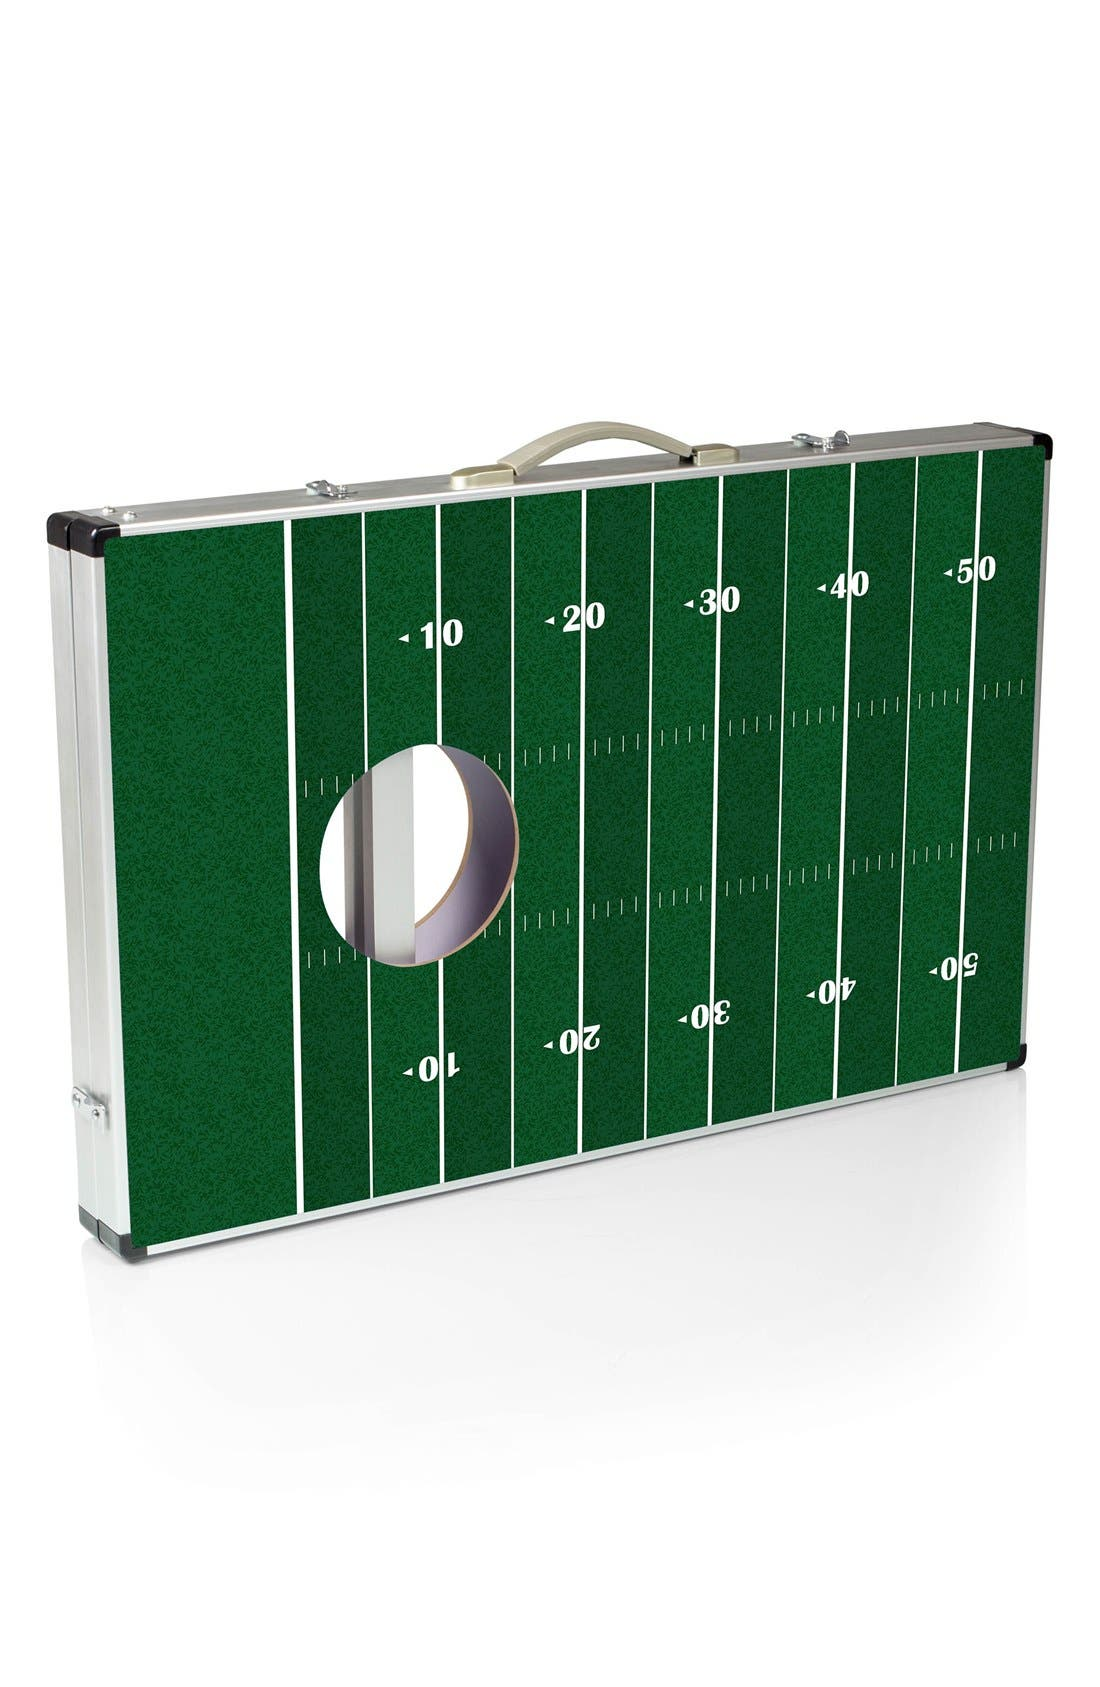 Alternate Image 2  - Picnic Time 'Football' Bean Bag Toss Game